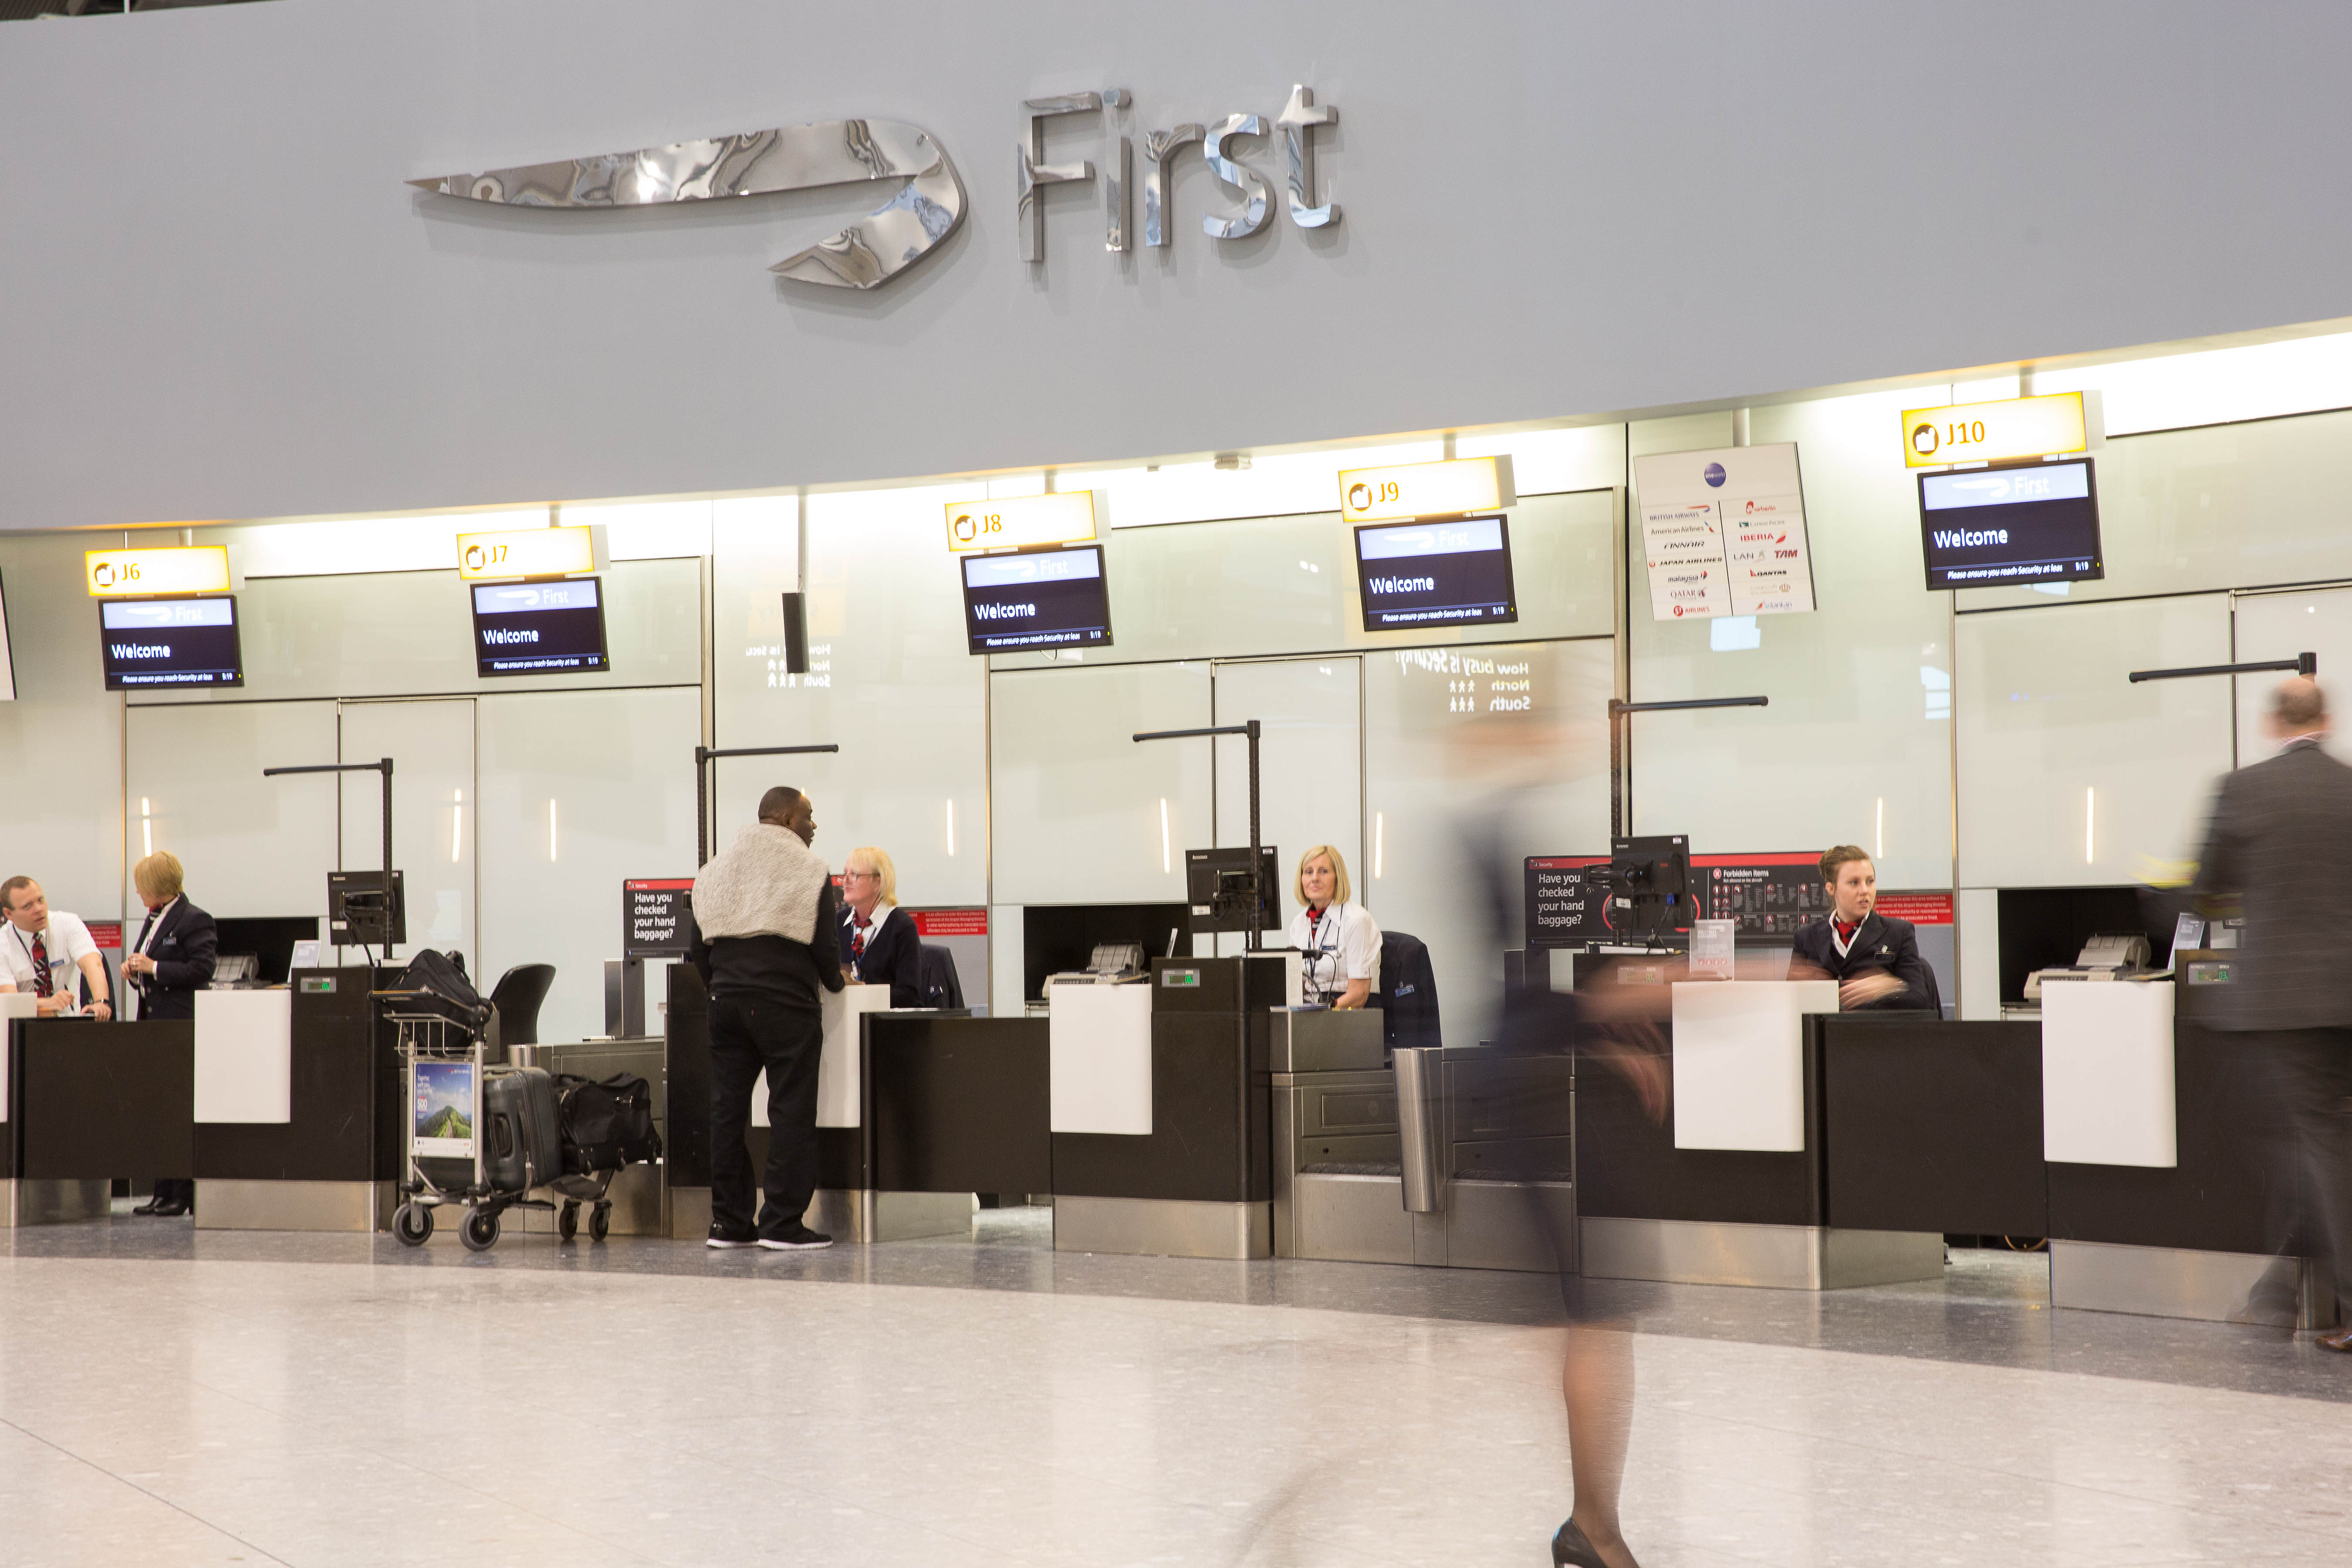 British Airways reveals its private check-in lounge at Heathrow